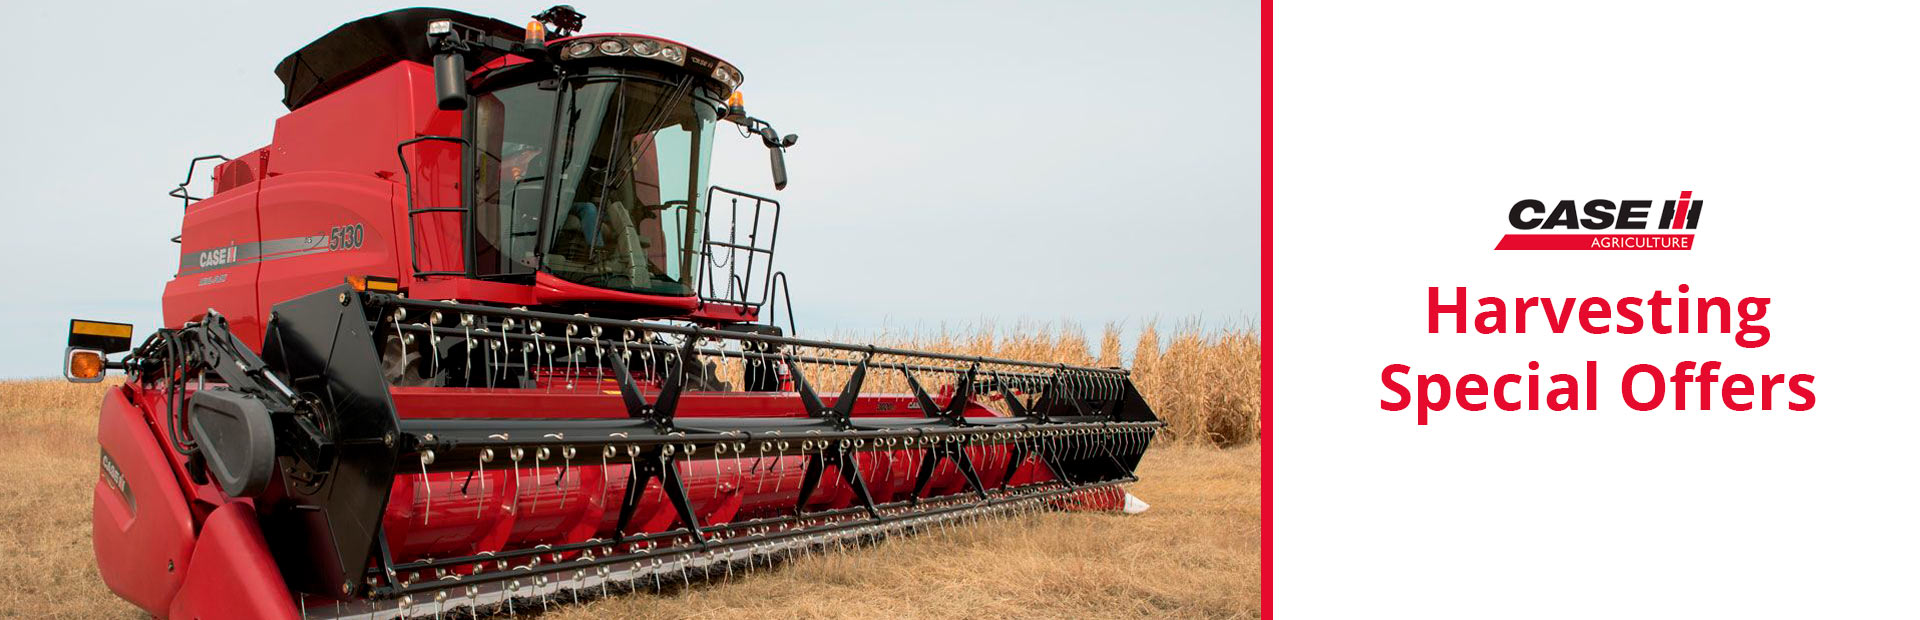 Case IH: Harvesting Special Offers